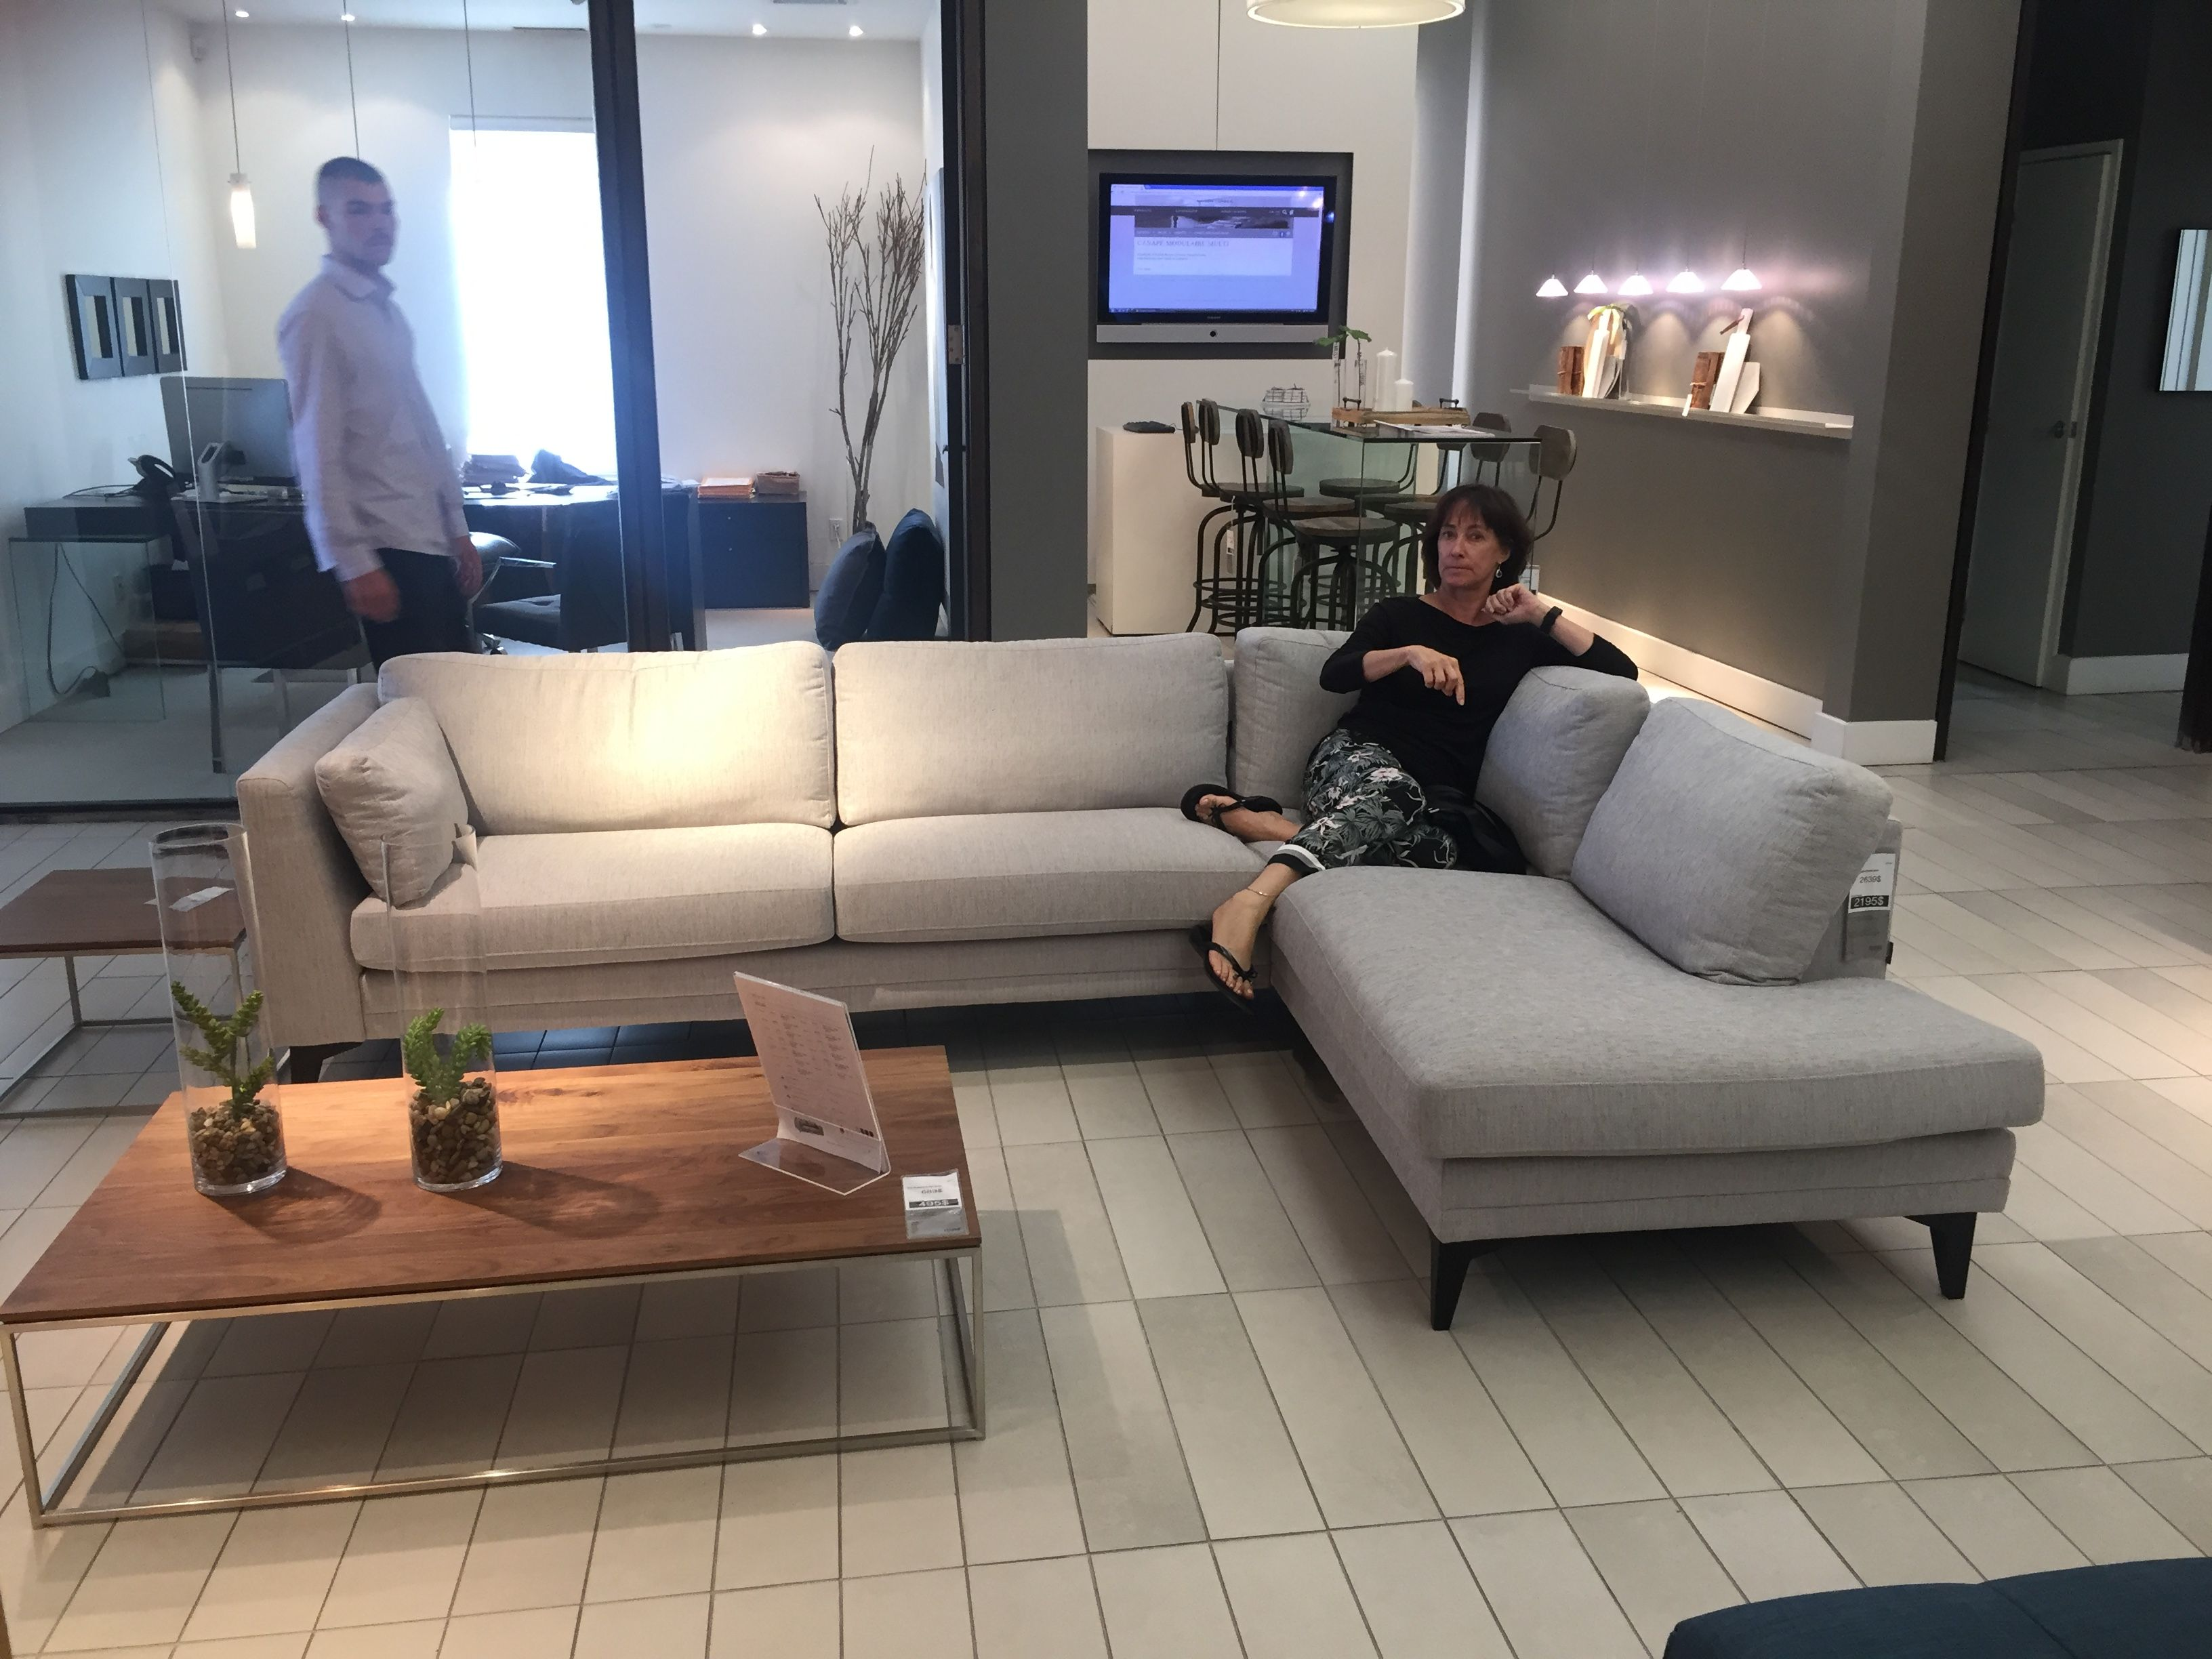 Pin By Lorraine Thirion On Montreal Condo Ideas Grey Sectional Home Decor Decor